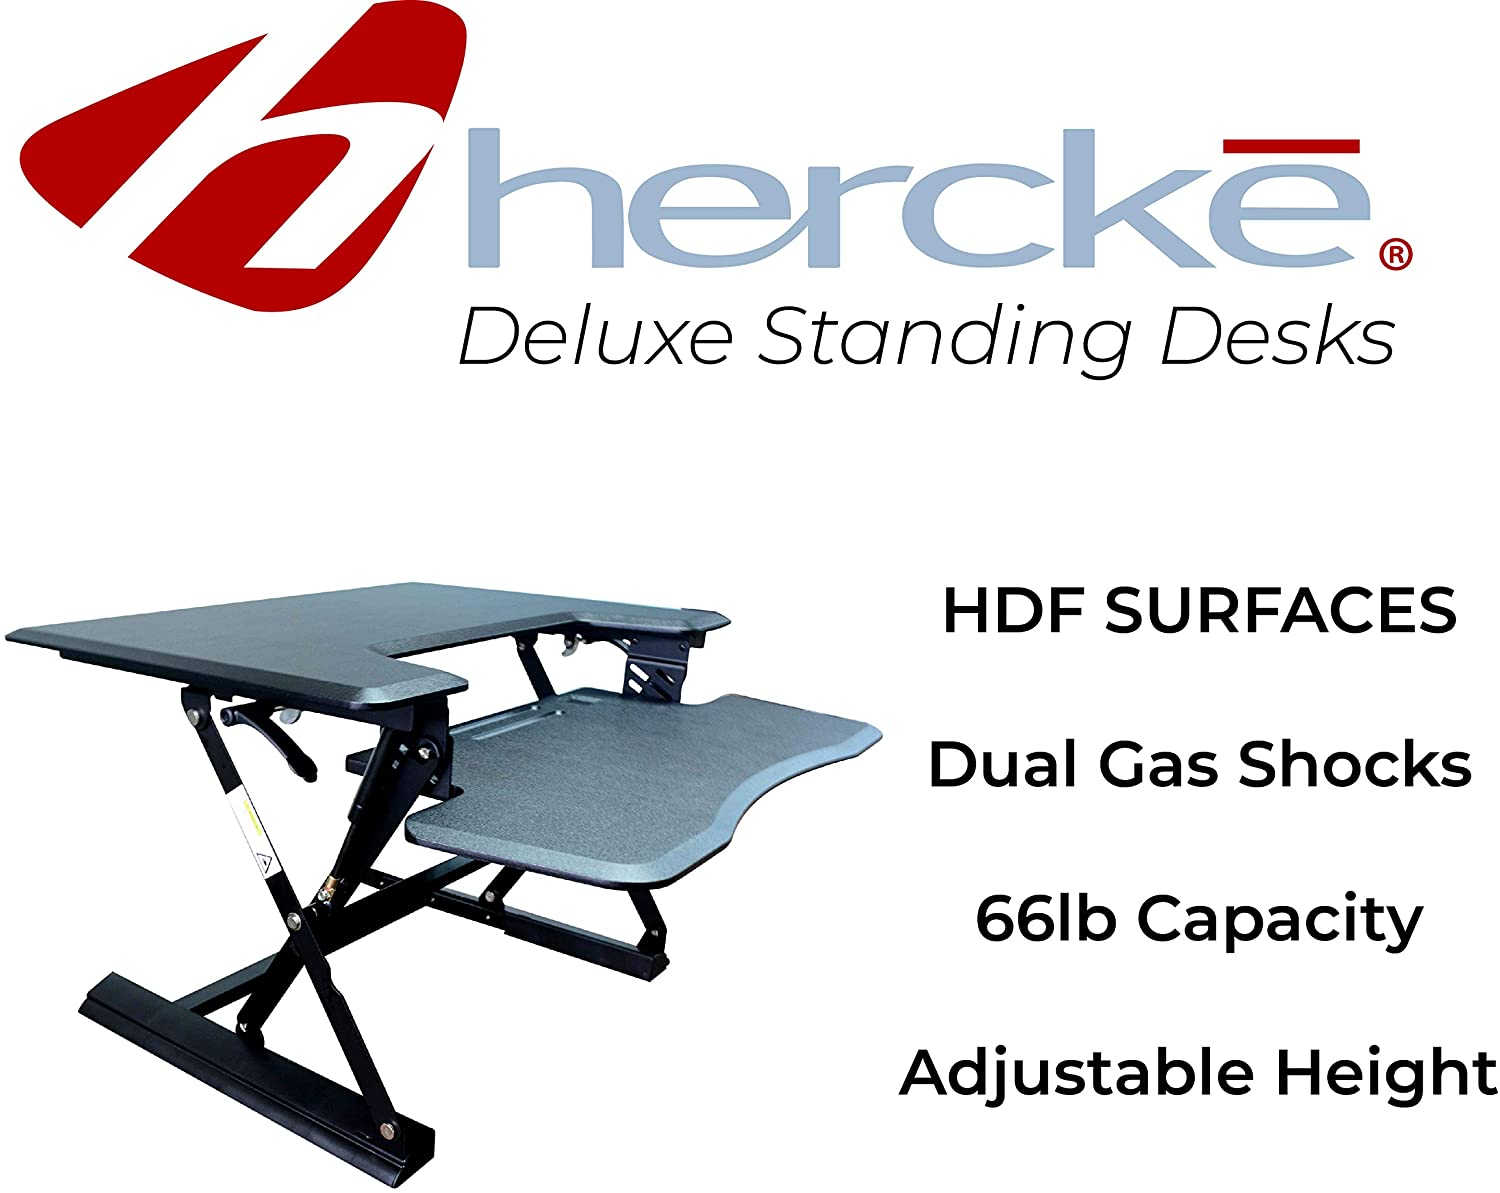 Hercke HDF Premium Standing Office Desk Height Adjustable 31 Wide Computer Desk with Easy-Action Levers High Density Fiberboard Black 50 lb Weight Capacity